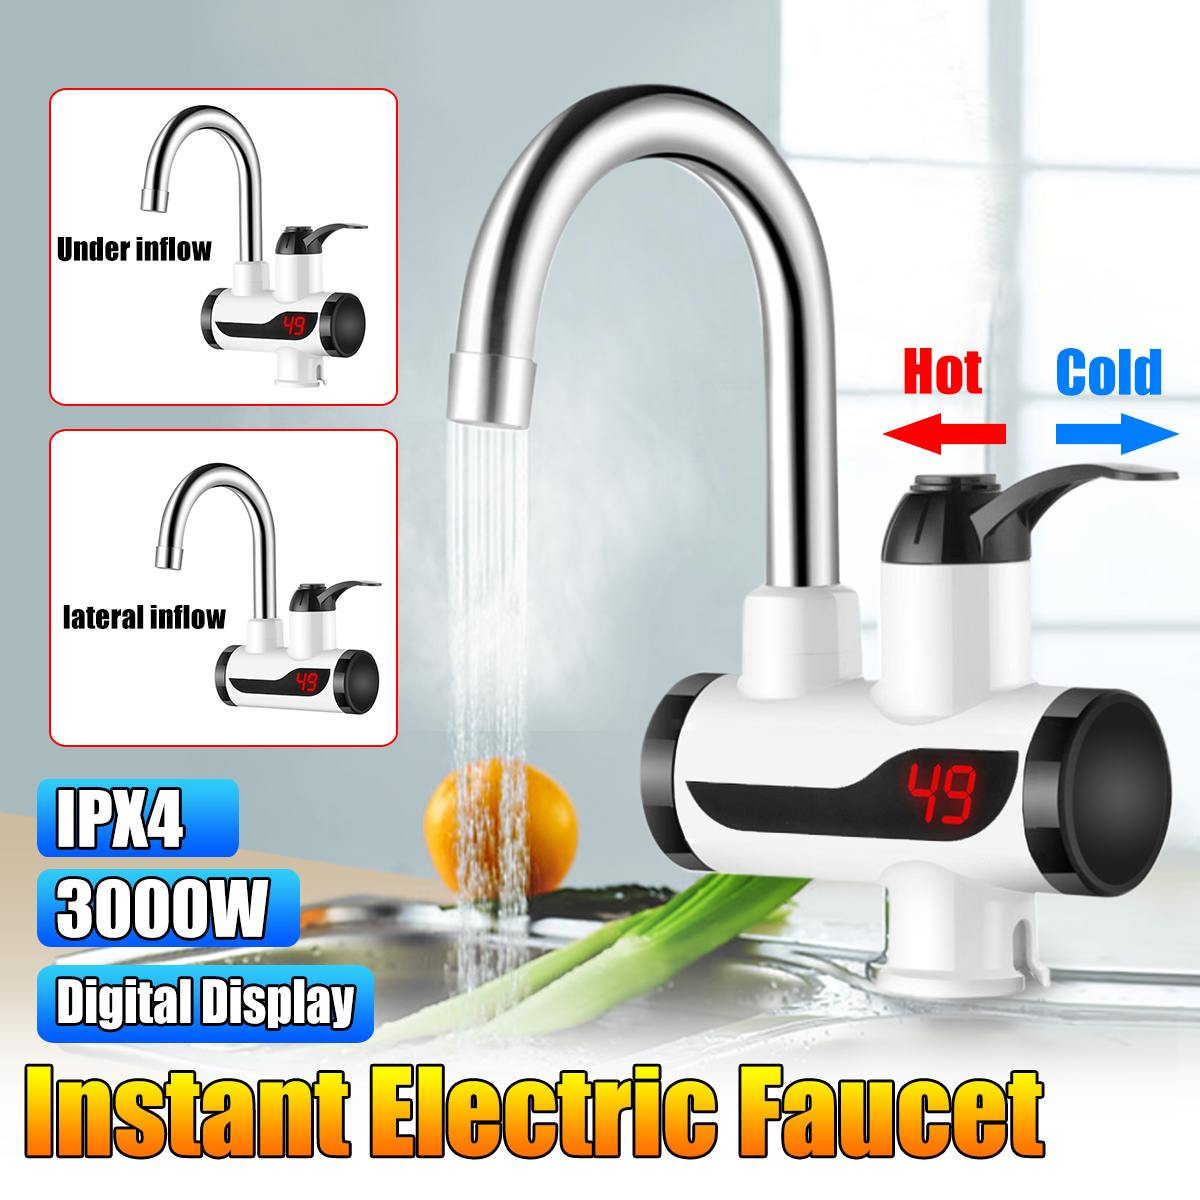 2Types 220V 3000W Instant Electric Faucet Tap Hot Water-Heater LED Display Bathroom Kitchen Faucet Tap Hot Water-Heater